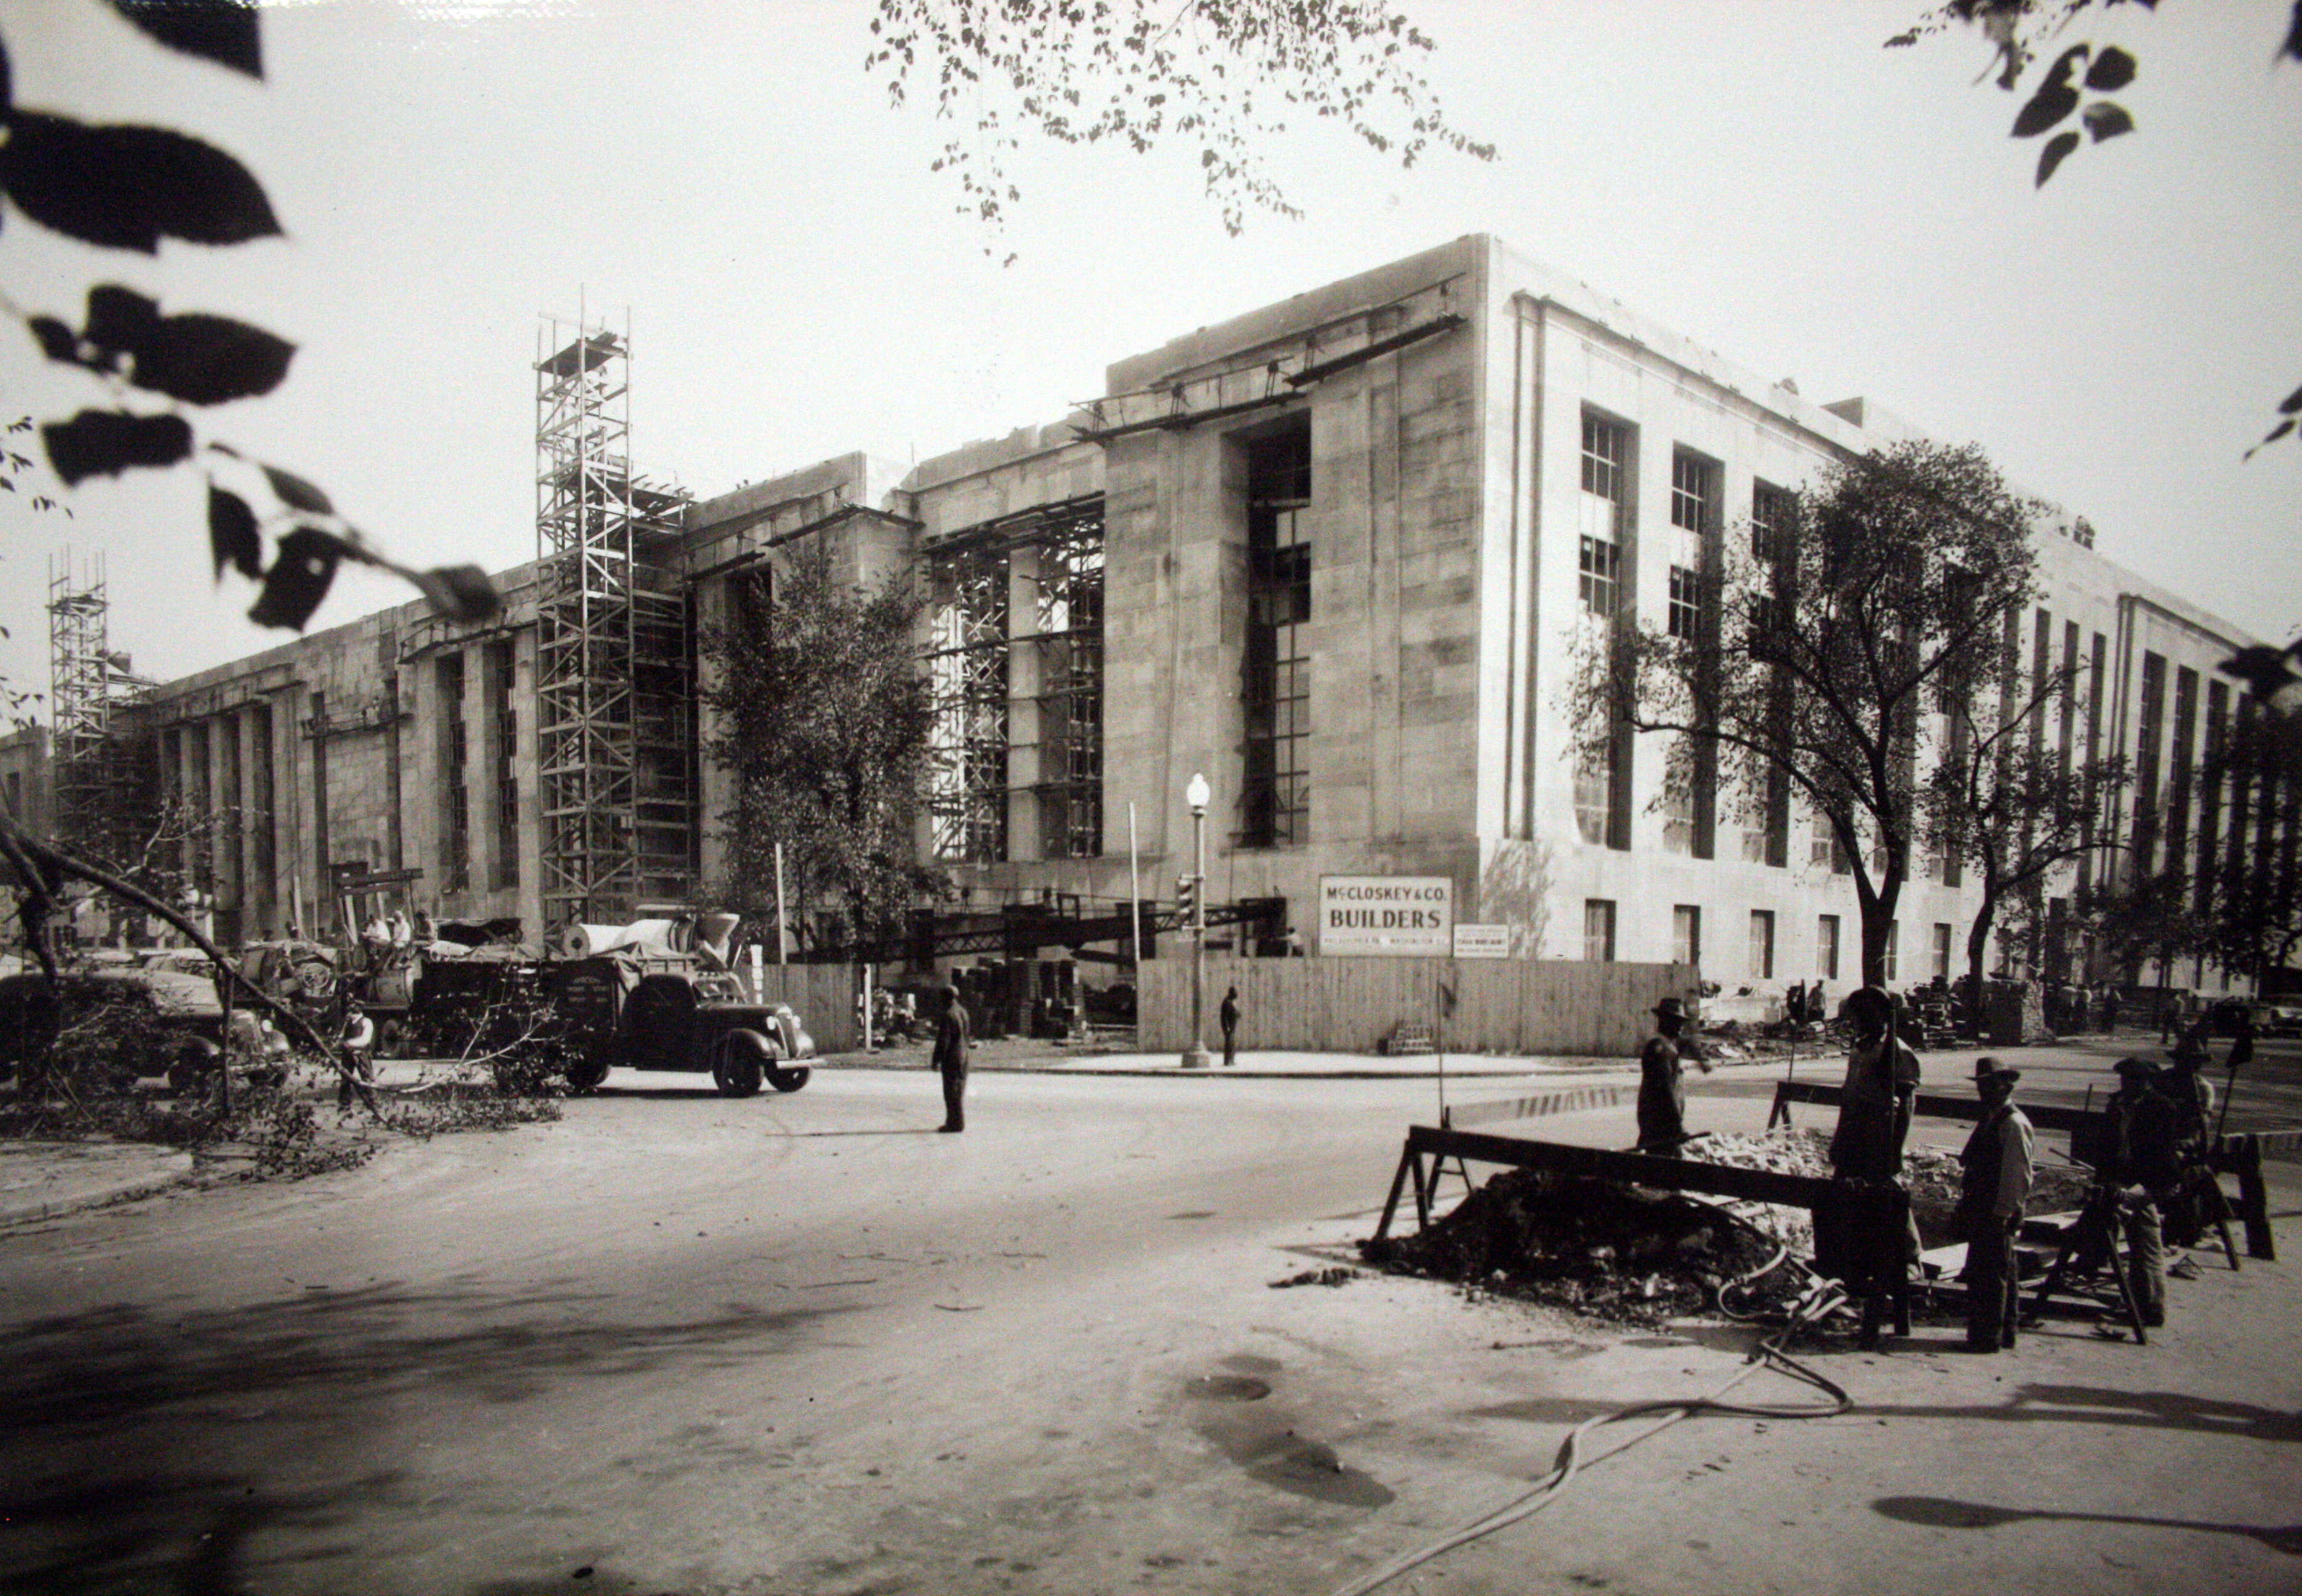 Wilbur J. Cohen Federal Building, View of Building Construction from the Corner of C and 3rd Streets SW, 1939.